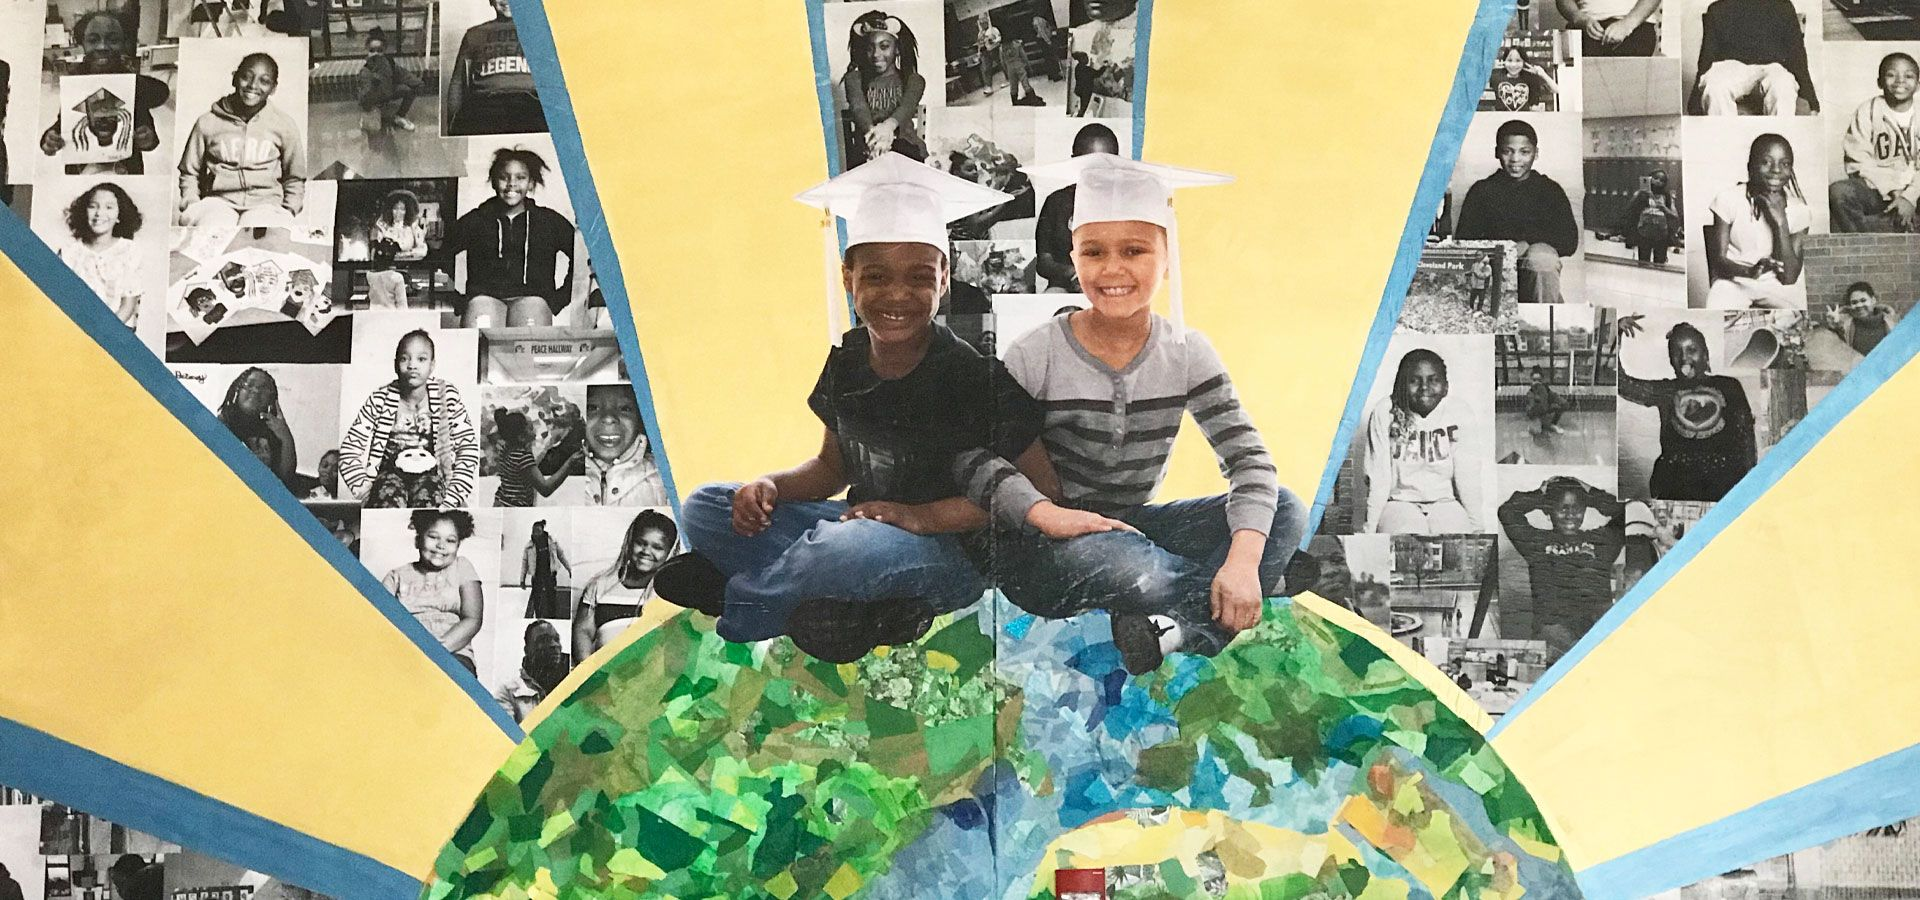 A collaged multimedia mural of an earth radiating rays and portraits of young people, with two students sitting on the earth